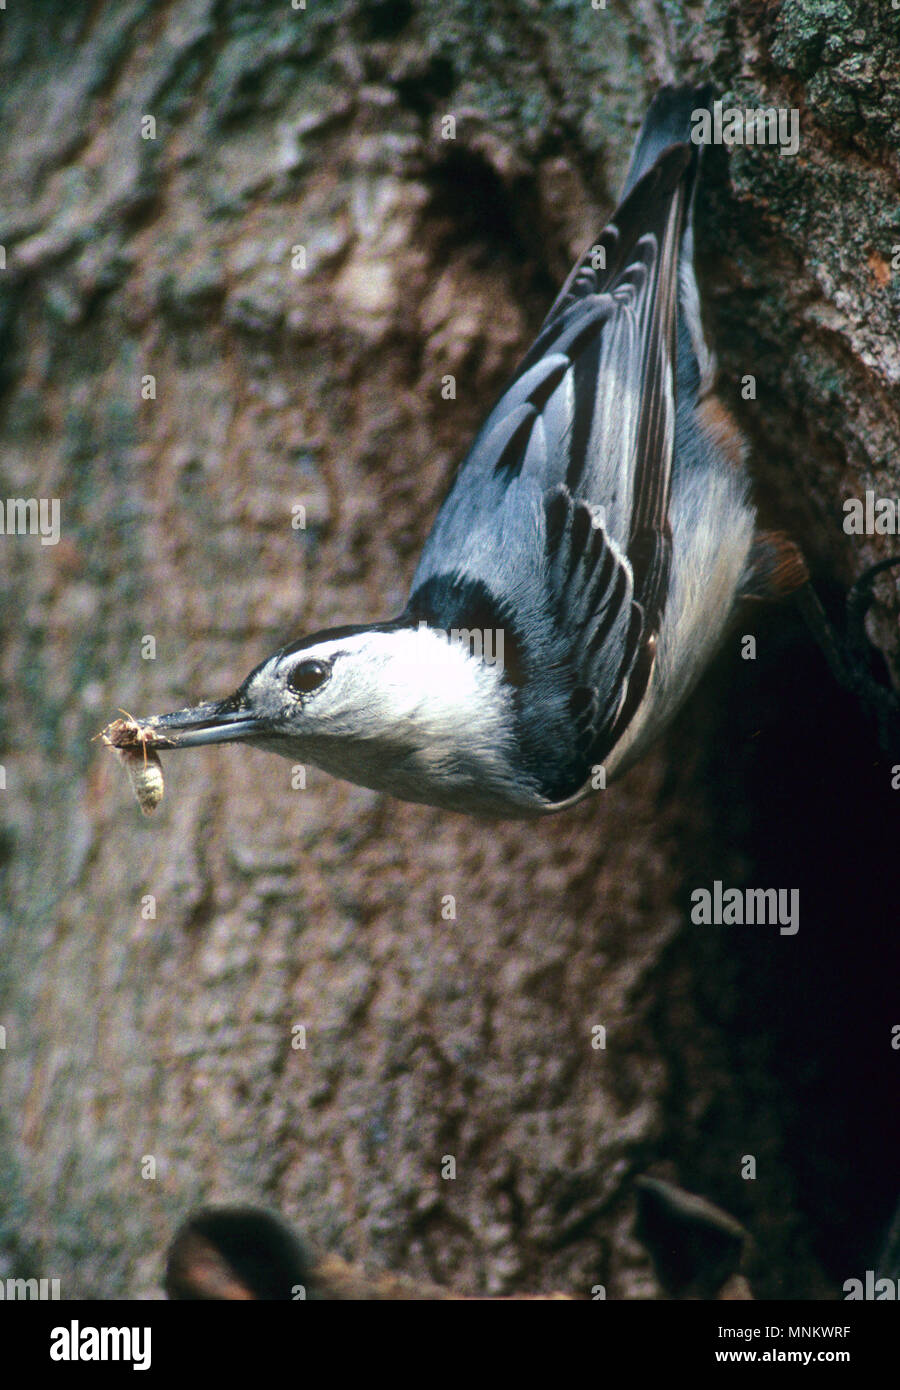 A Nuthatch (family of Passeriformes) feeding on a tree in Taunton, Massachusetts, USA - Stock Image